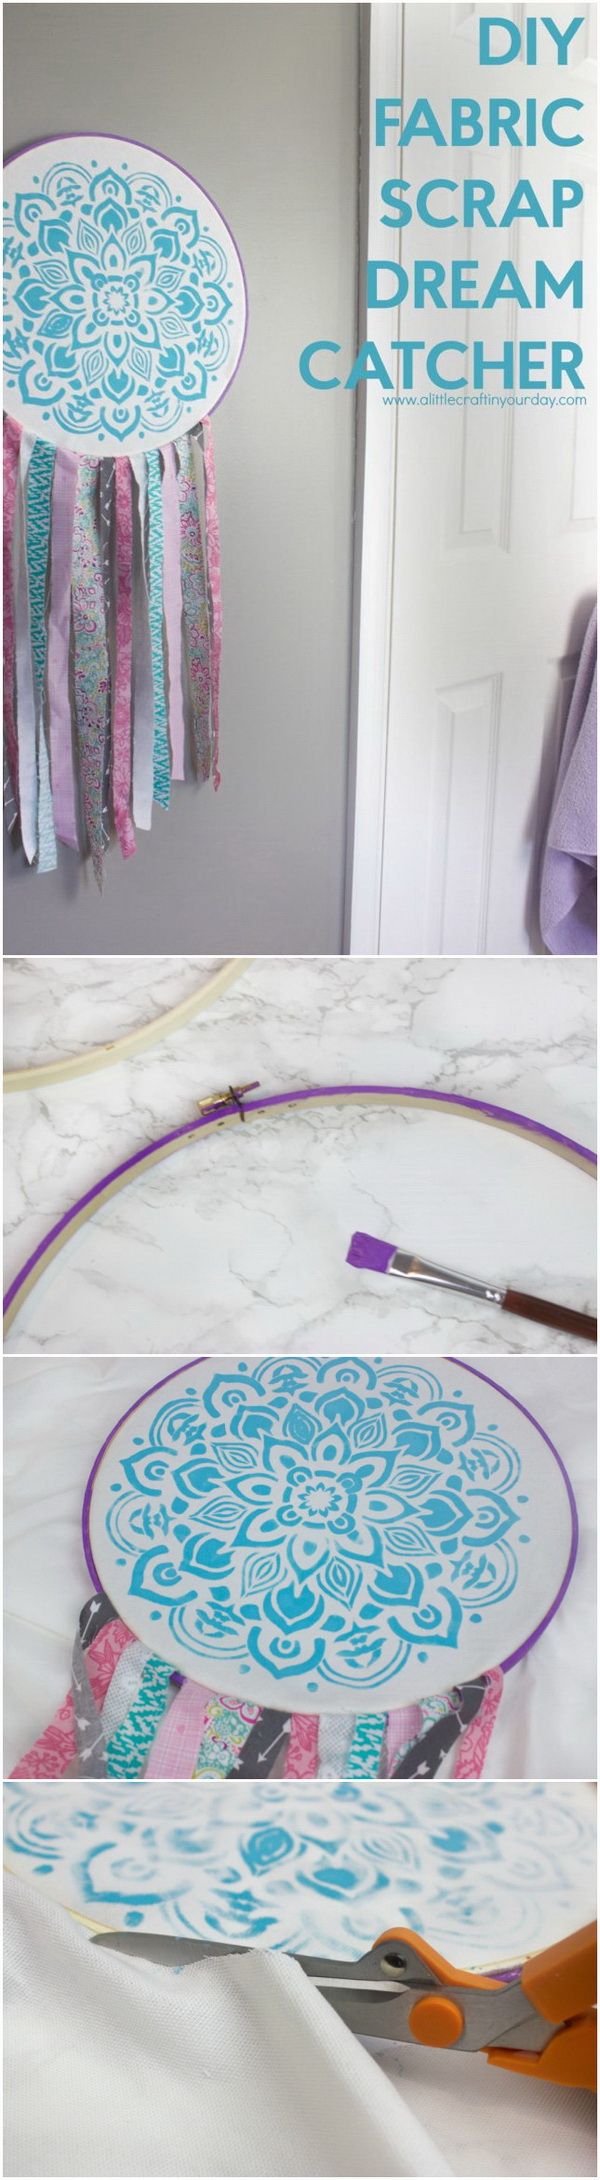 DIY Dreamcatcher from fabric scraps. If you have any fabric scraps lying around, this DIY dream catcher would be the perfect craft for you to make this weekend.